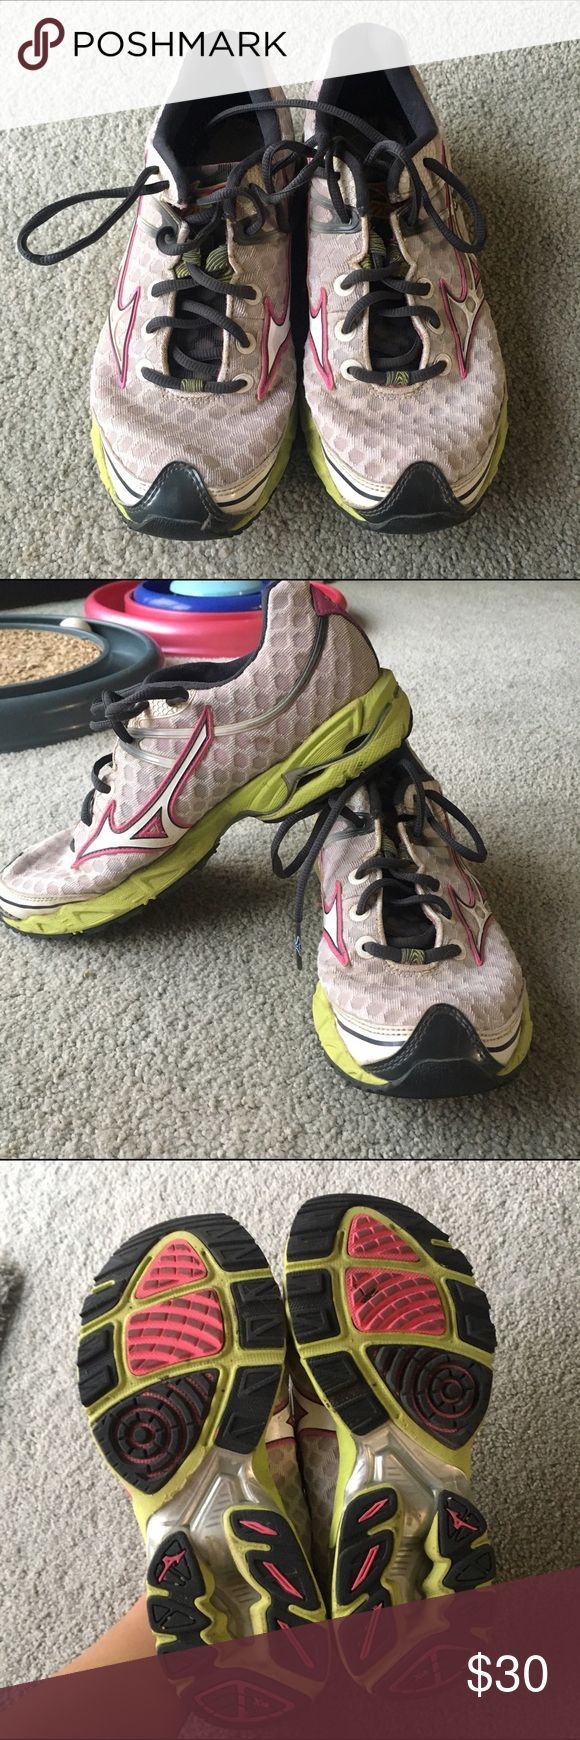 Mizuno Wave Precision 12 Decent amount of wear but are still a good walking/jogging shoe. the insole was taken out so a new one would need to be put in place. Price is negotiable so feel free to make an offer(: Mizuno Shoes Athletic Shoes